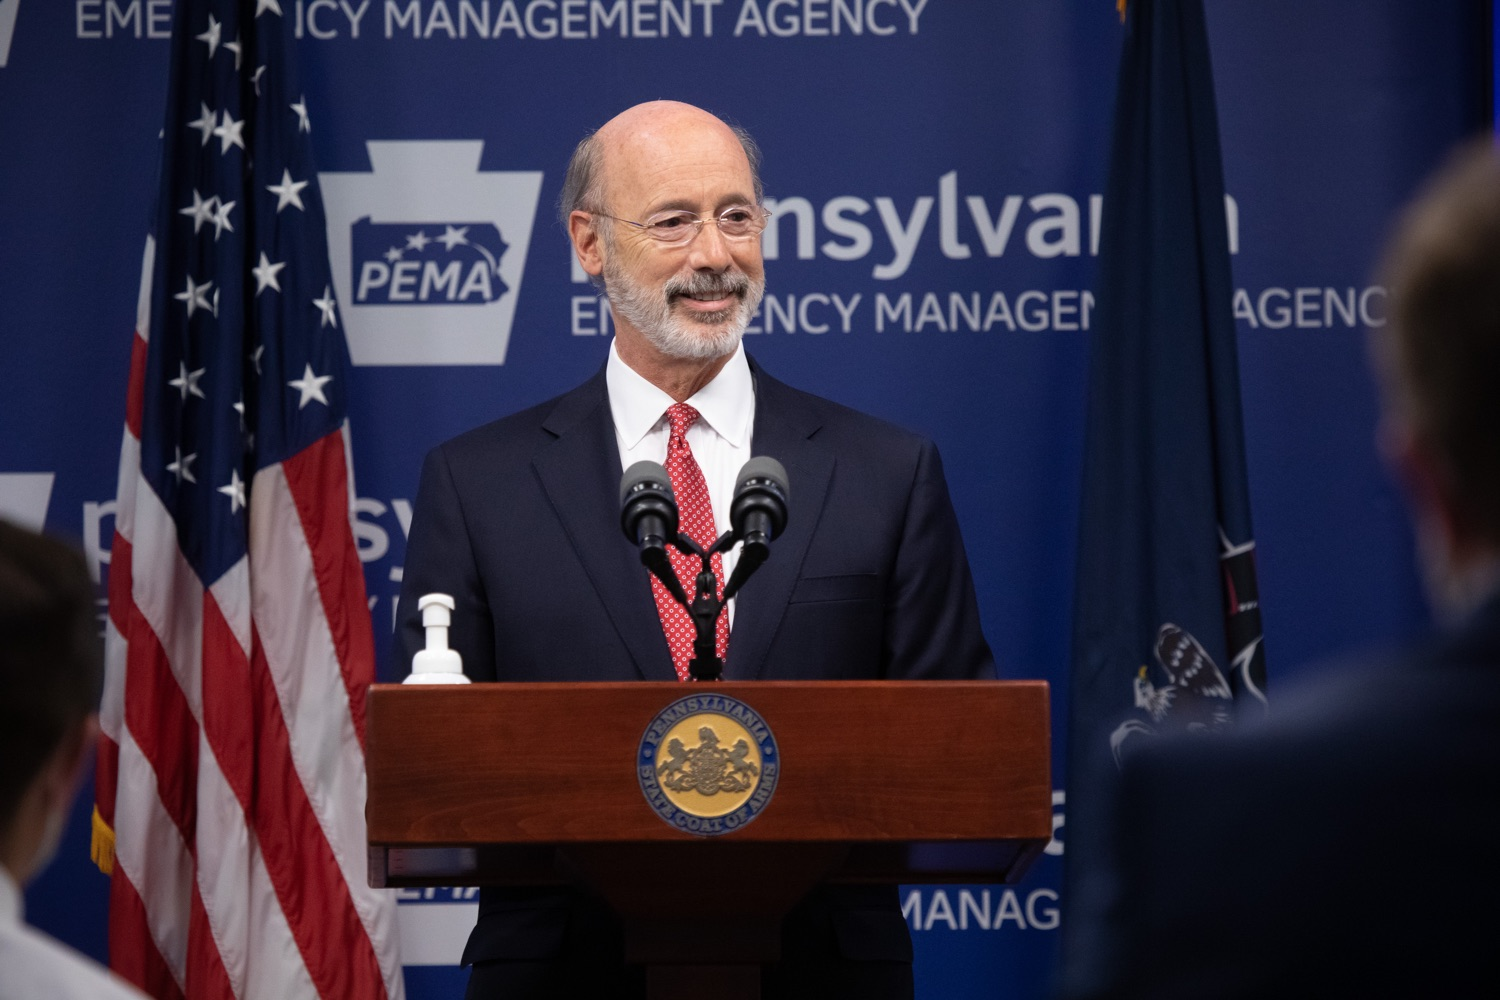 "<a href=""https://filesource.wostreaming.net/commonwealthofpa/photo/18091_gov_covid_update_dz_10.jpg"" target=""_blank"">⇣ Download Photo<br></a>Pennsylvania Governor Tom Wolf answering questions from the press.  As states across the country begin to reopen and nearly half are seeing COVID-19 cases rise, Governor Tom Wolf announced Friday that Pennsylvania is not one of them. ...Today at a daily COVID briefing with Health Secretary Dr. Rachel Levine, he noted another milestone: The Centers for Disease Control and Prevention proprietary data for states indicates that we are one of just three states that has had a downward trajectory of COVID- 19 cases for more than 42 days. The other two states are Montana and Hawaii.  JUNE 17, 2020 - HARRISBURG, PA."